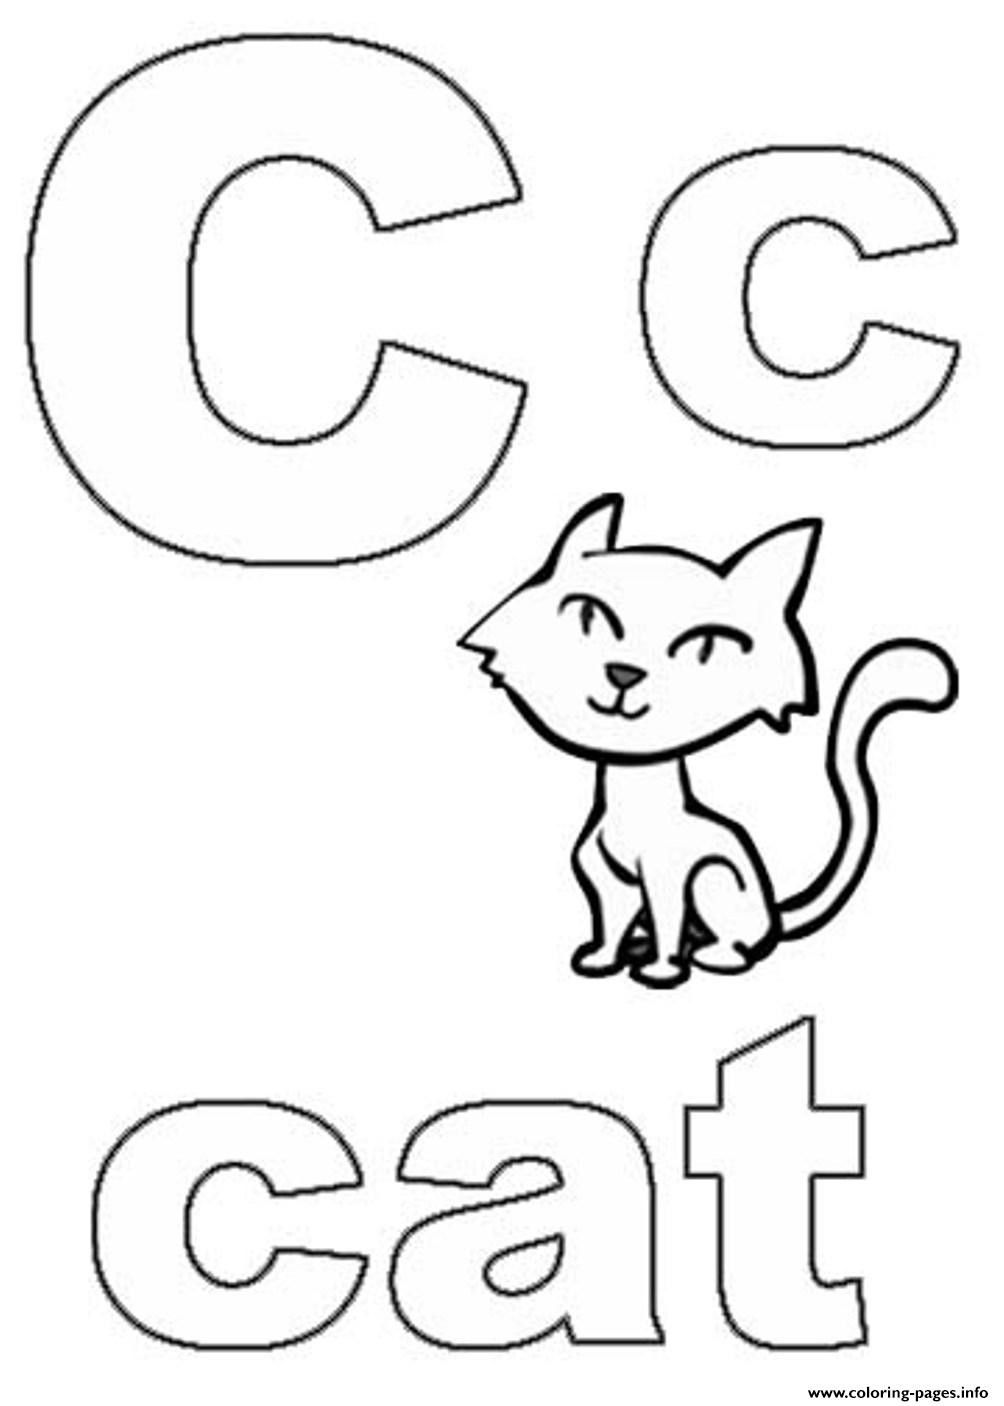 C is for Cat Coloring Page - youngandtae.com  Abc coloring pages